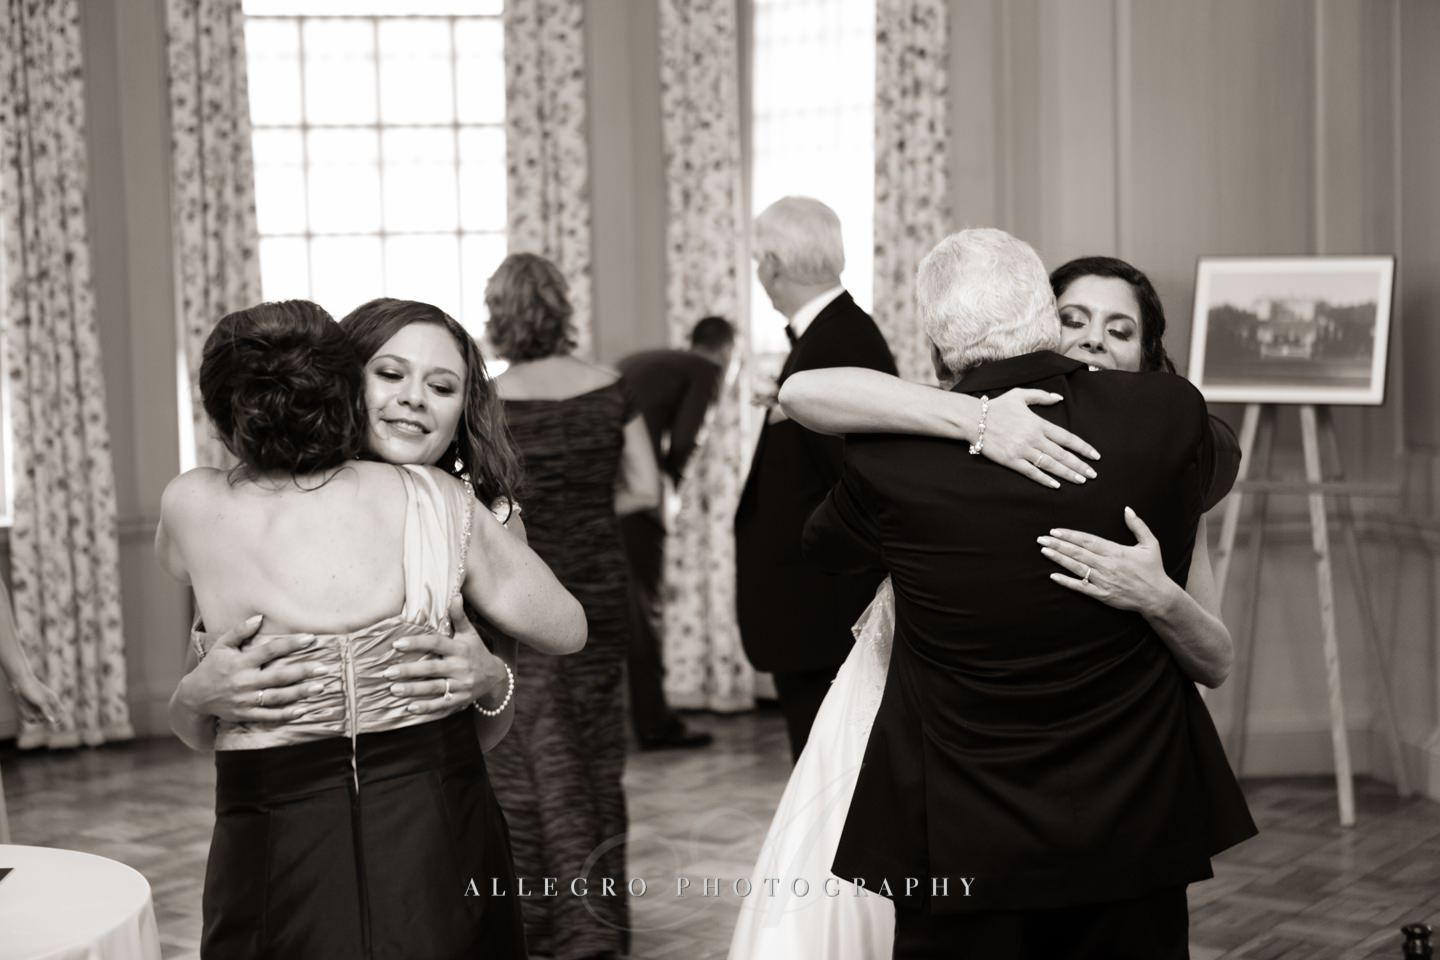 hugging parents of bride - photo by Allegro Photography